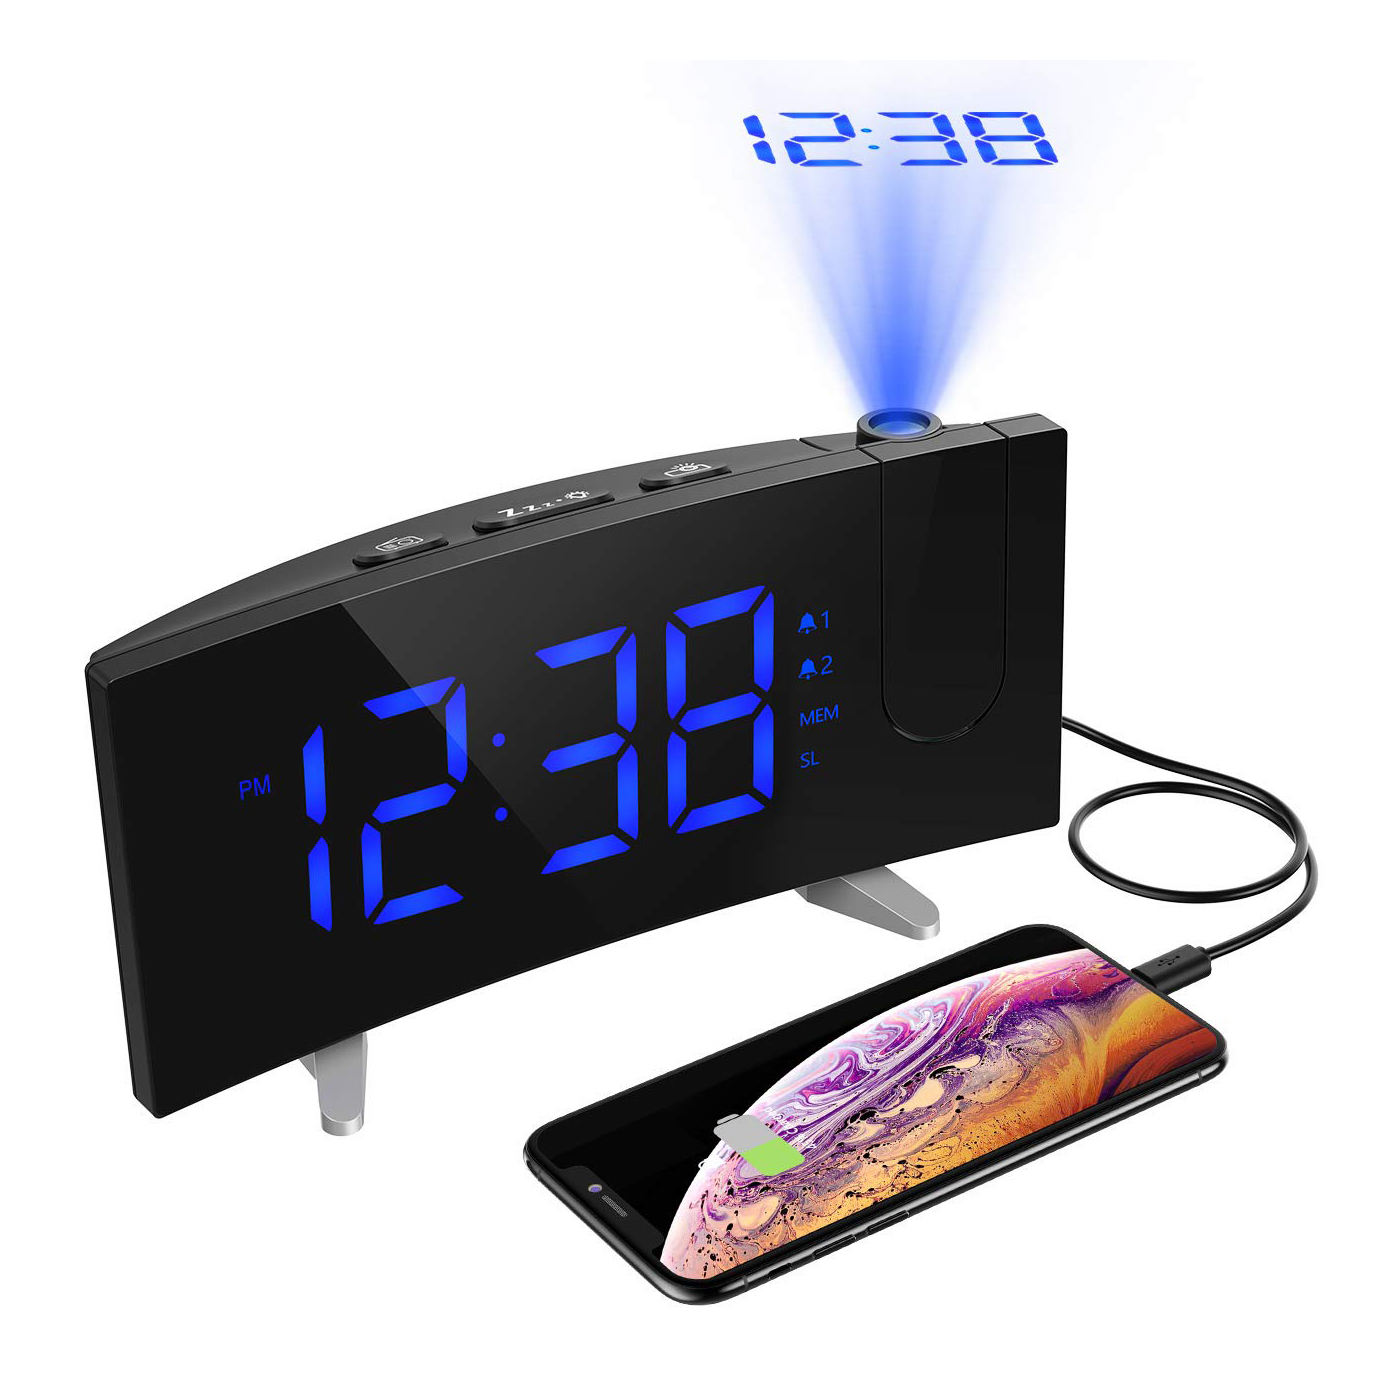 2019 New FM Radio Projection Alarm Table Clock Sleep Digital LED Clock with USB Charger